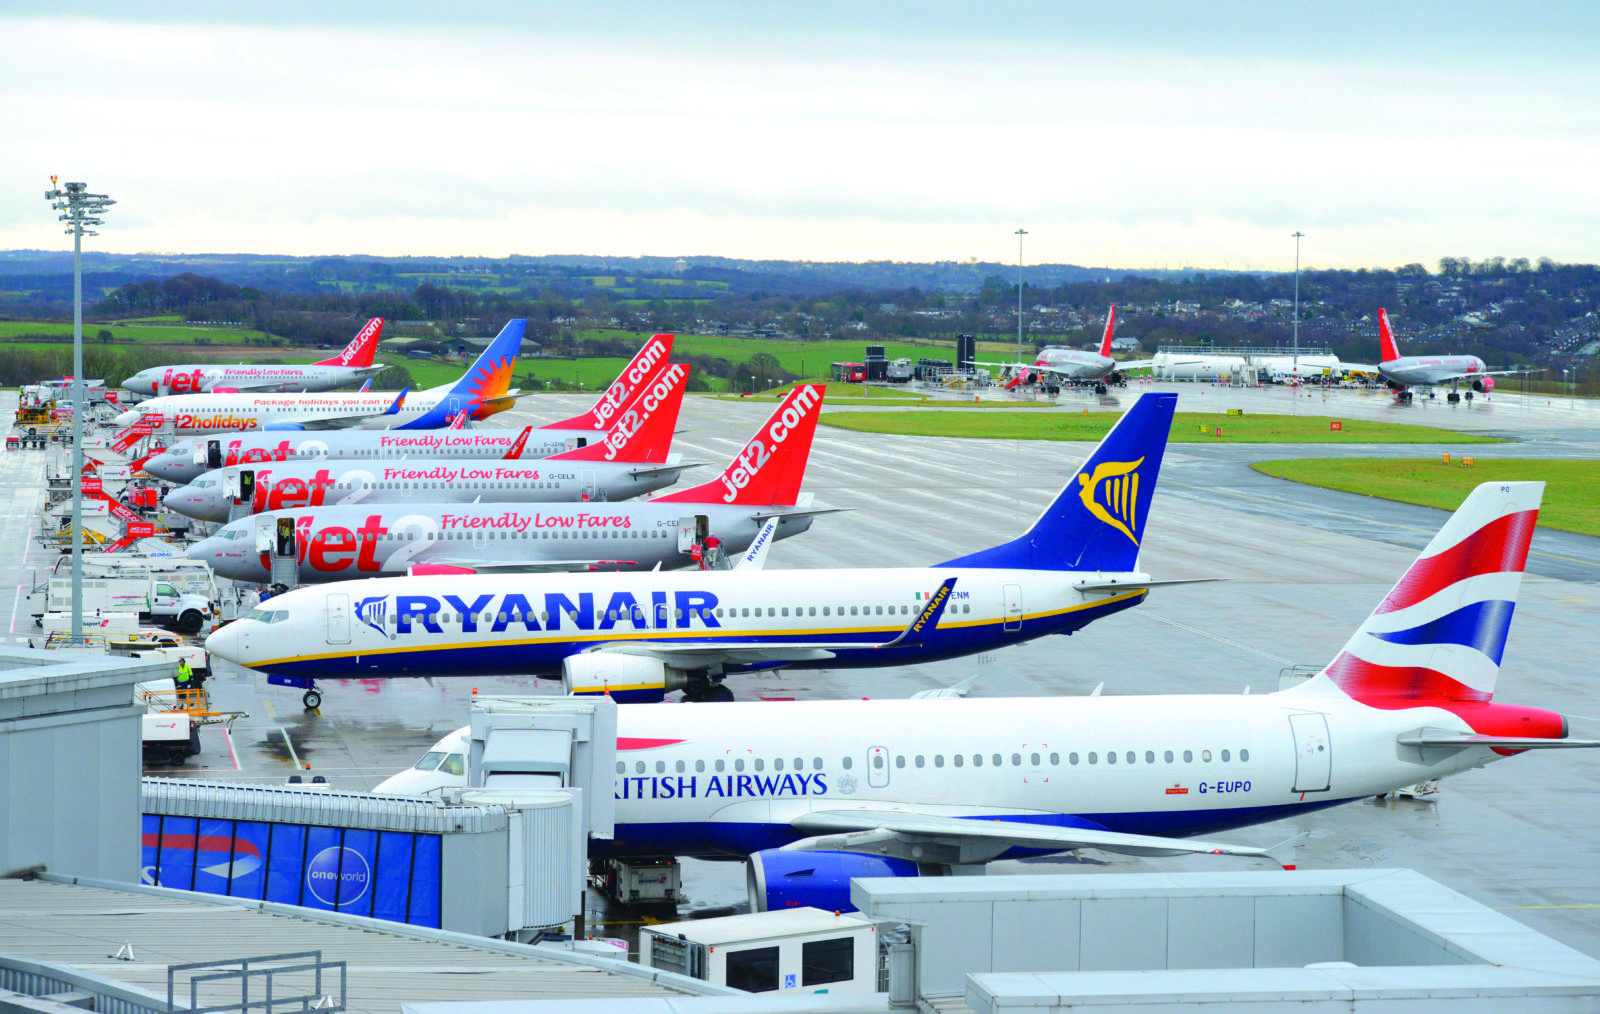 Leeds bradford airport lba news business travel phil forster media and communications whizz at leeds bradford airport checks in with he norths evangeline spachis to explain why lba is a first class m4hsunfo